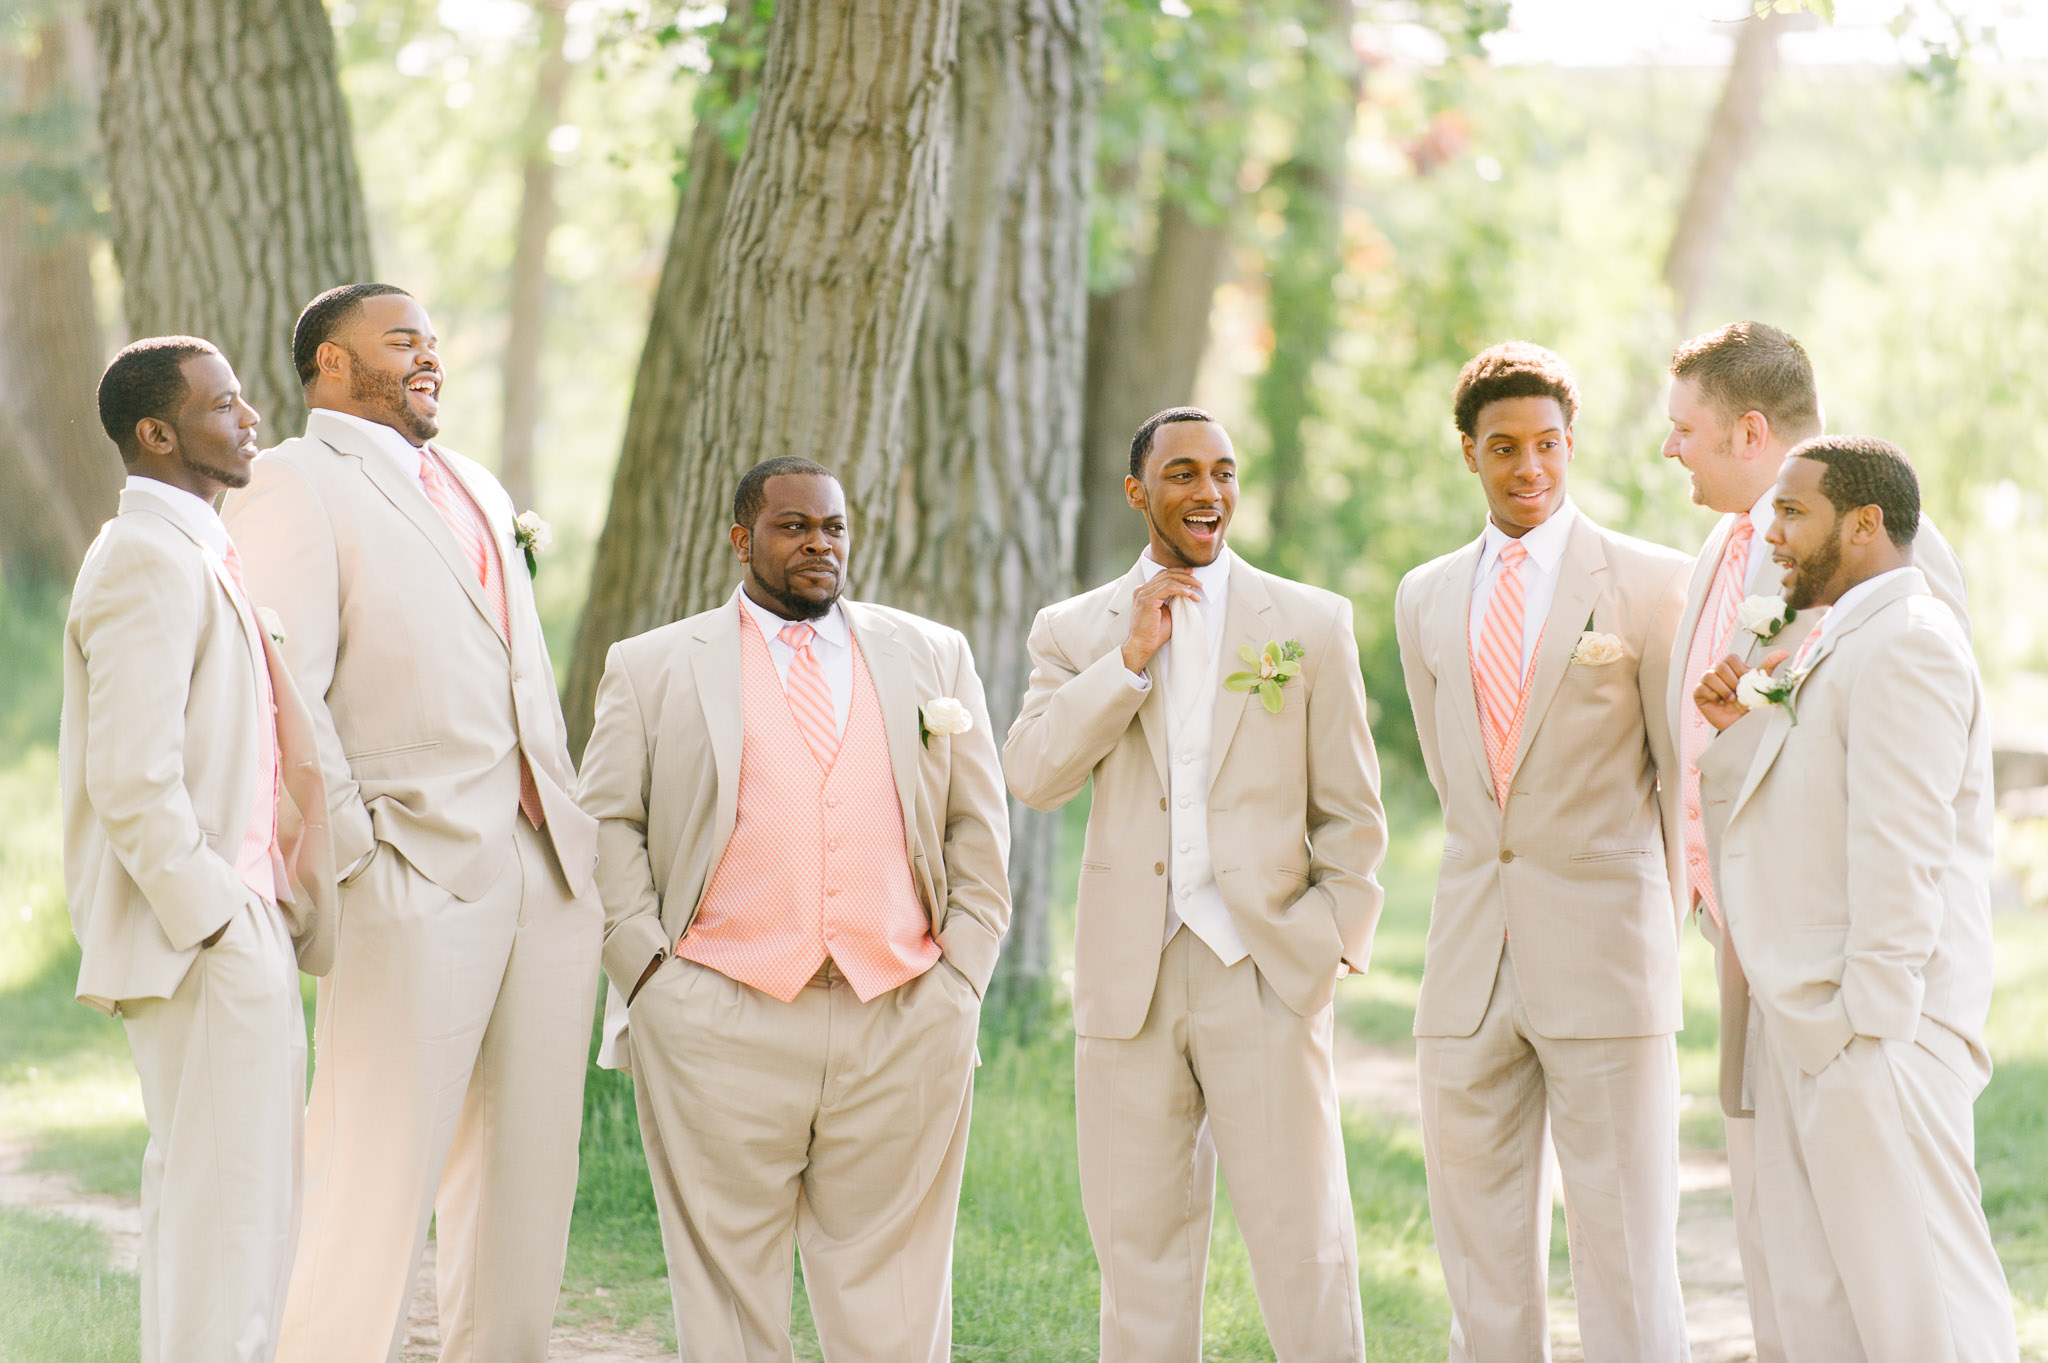 A groom and groomsmen laugh it up in a casual portrait taken at the Tifft Nature Preserve